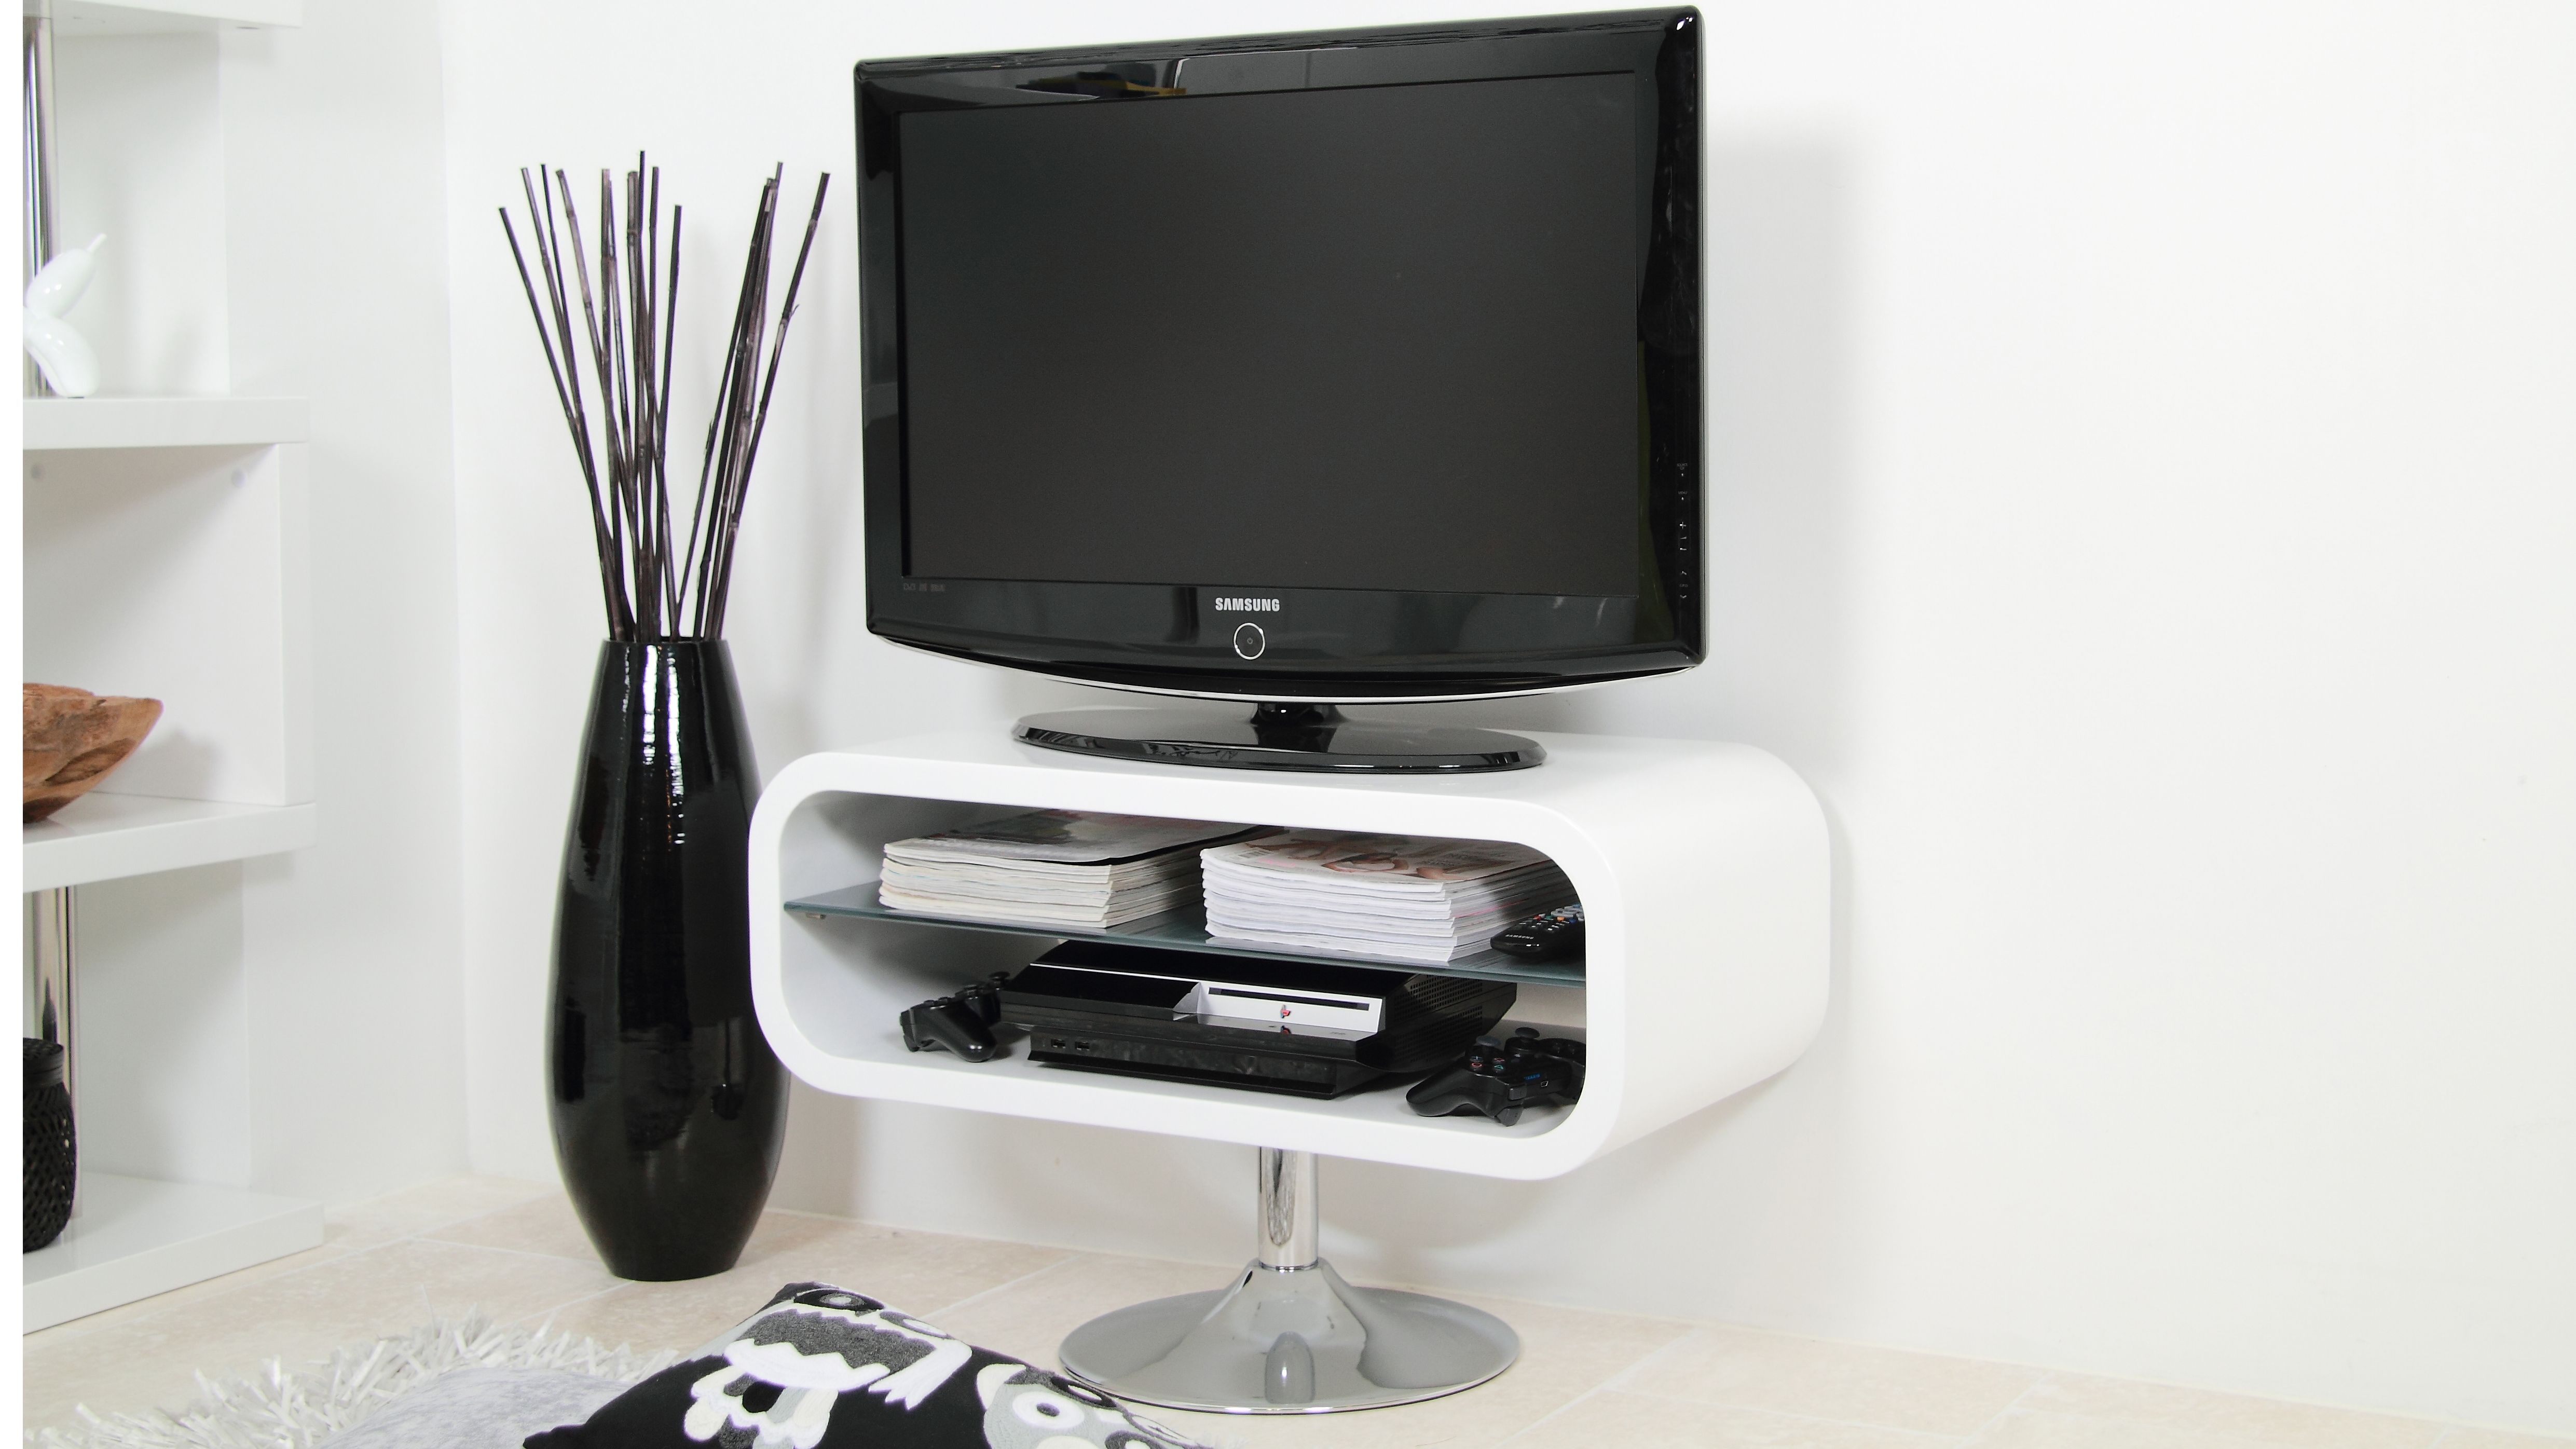 table to ideas on universal for pedestal base home with design height inspirational new wall top of stand swivel inch tvs tv